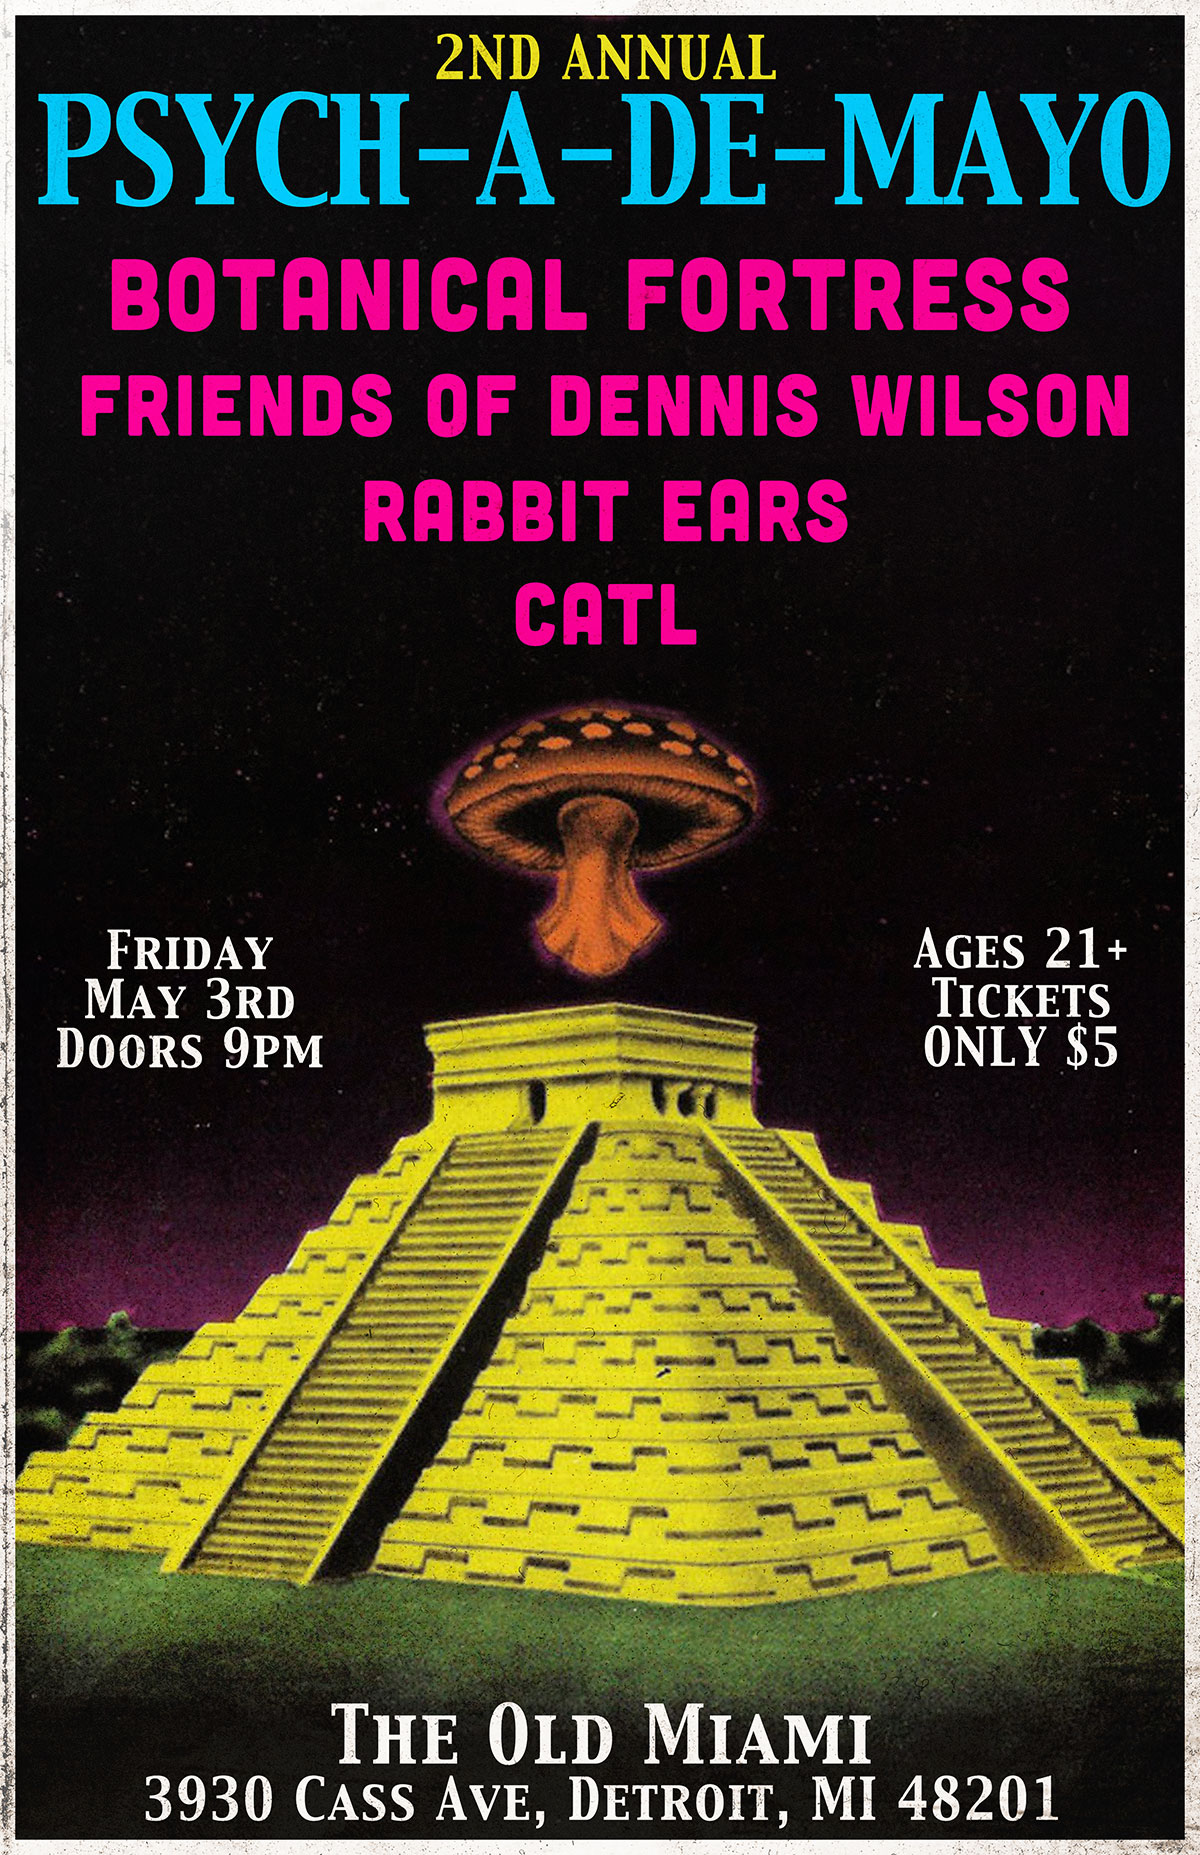 Friends of Dennis Wilson at PSYCH-A-DE-MAYO - Friends of Dennis Wilson